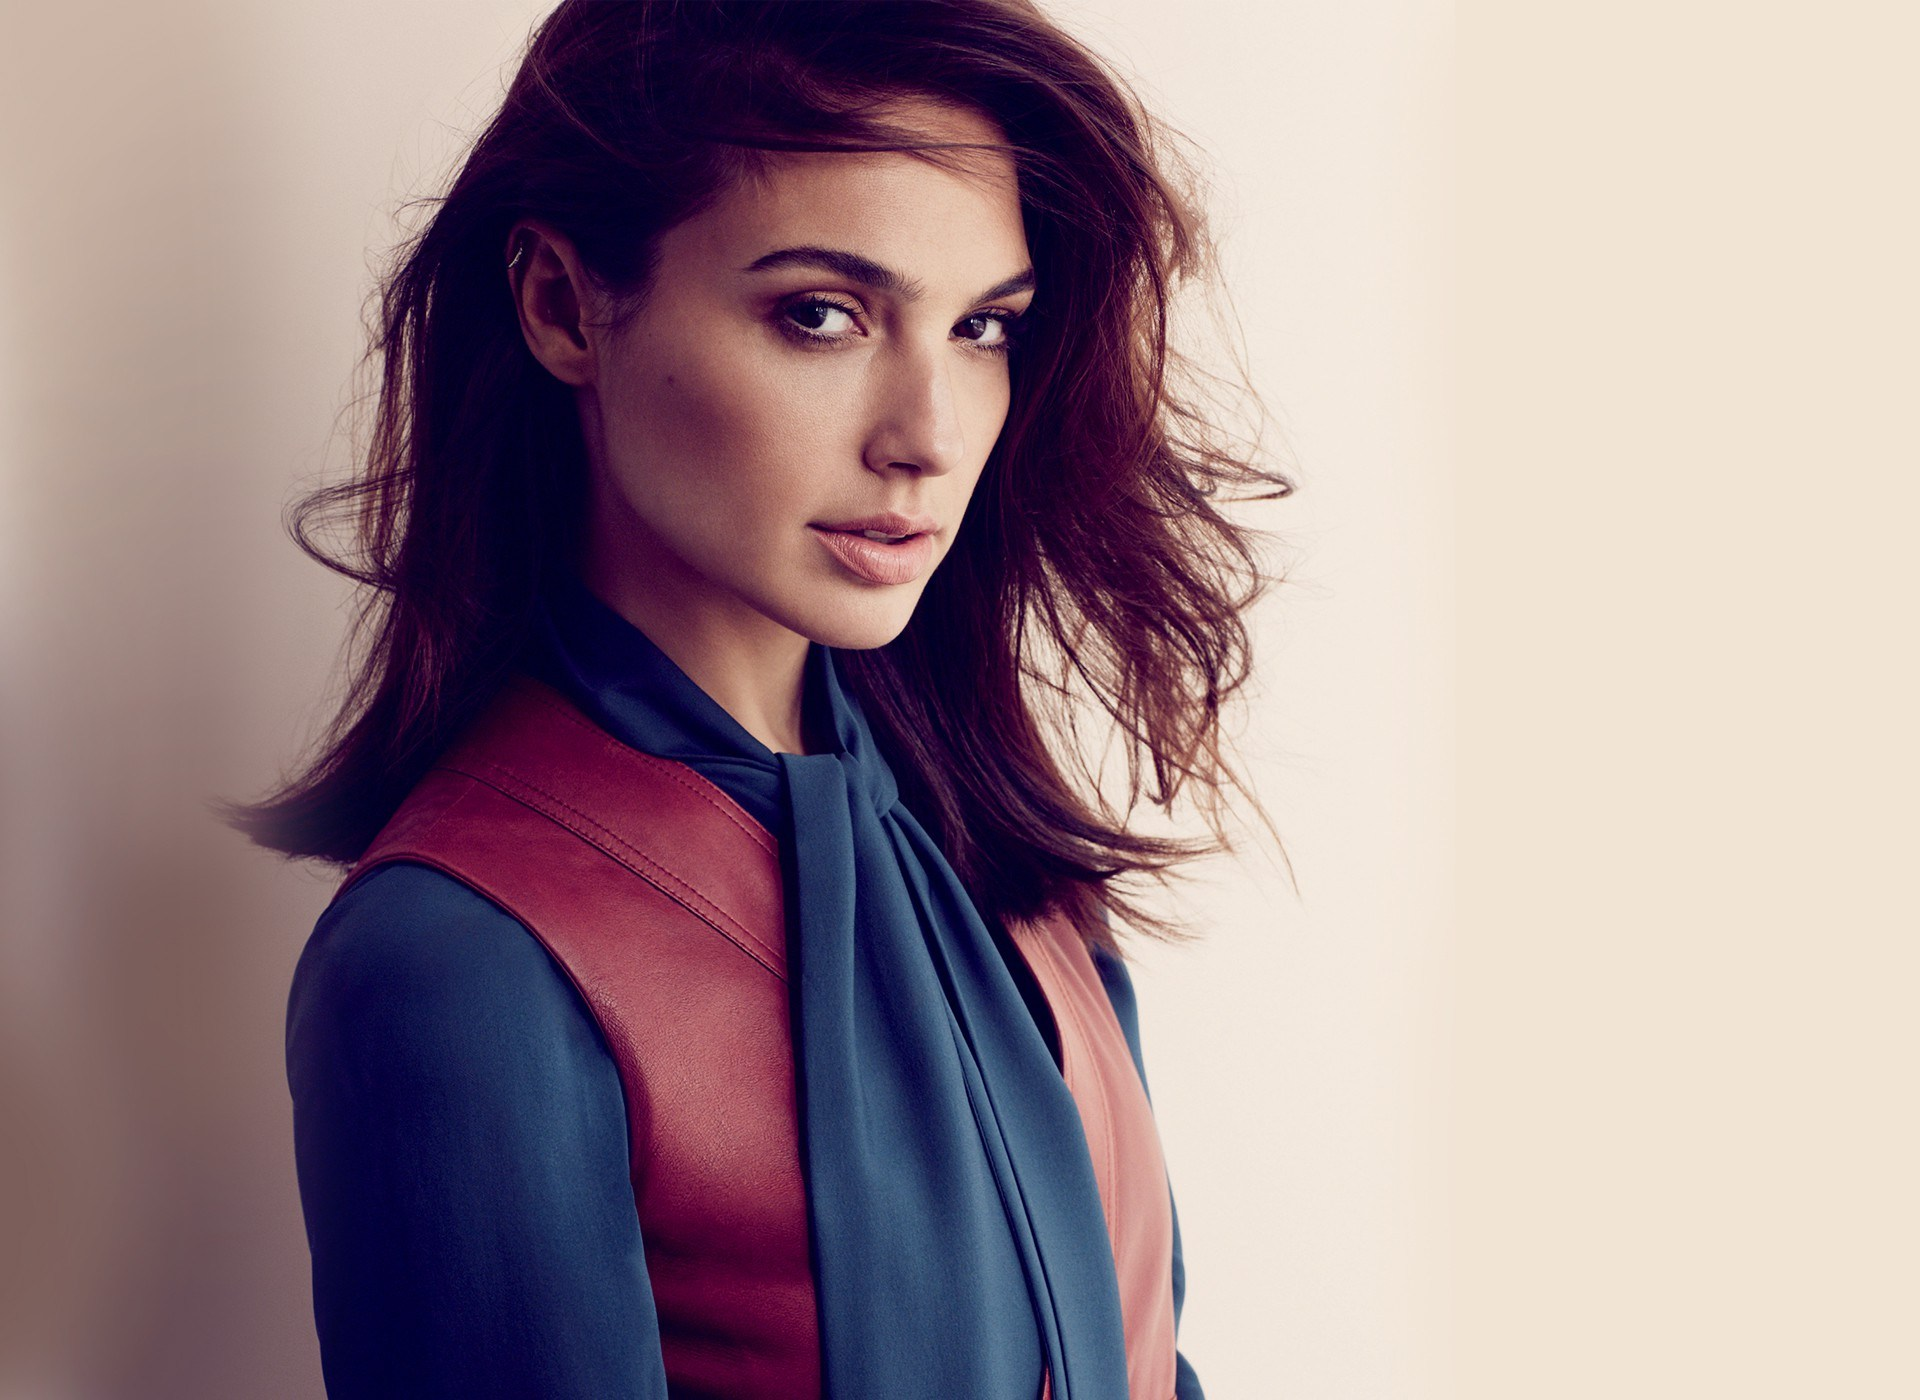 gal gadot celebrity computer wallpaper 62105